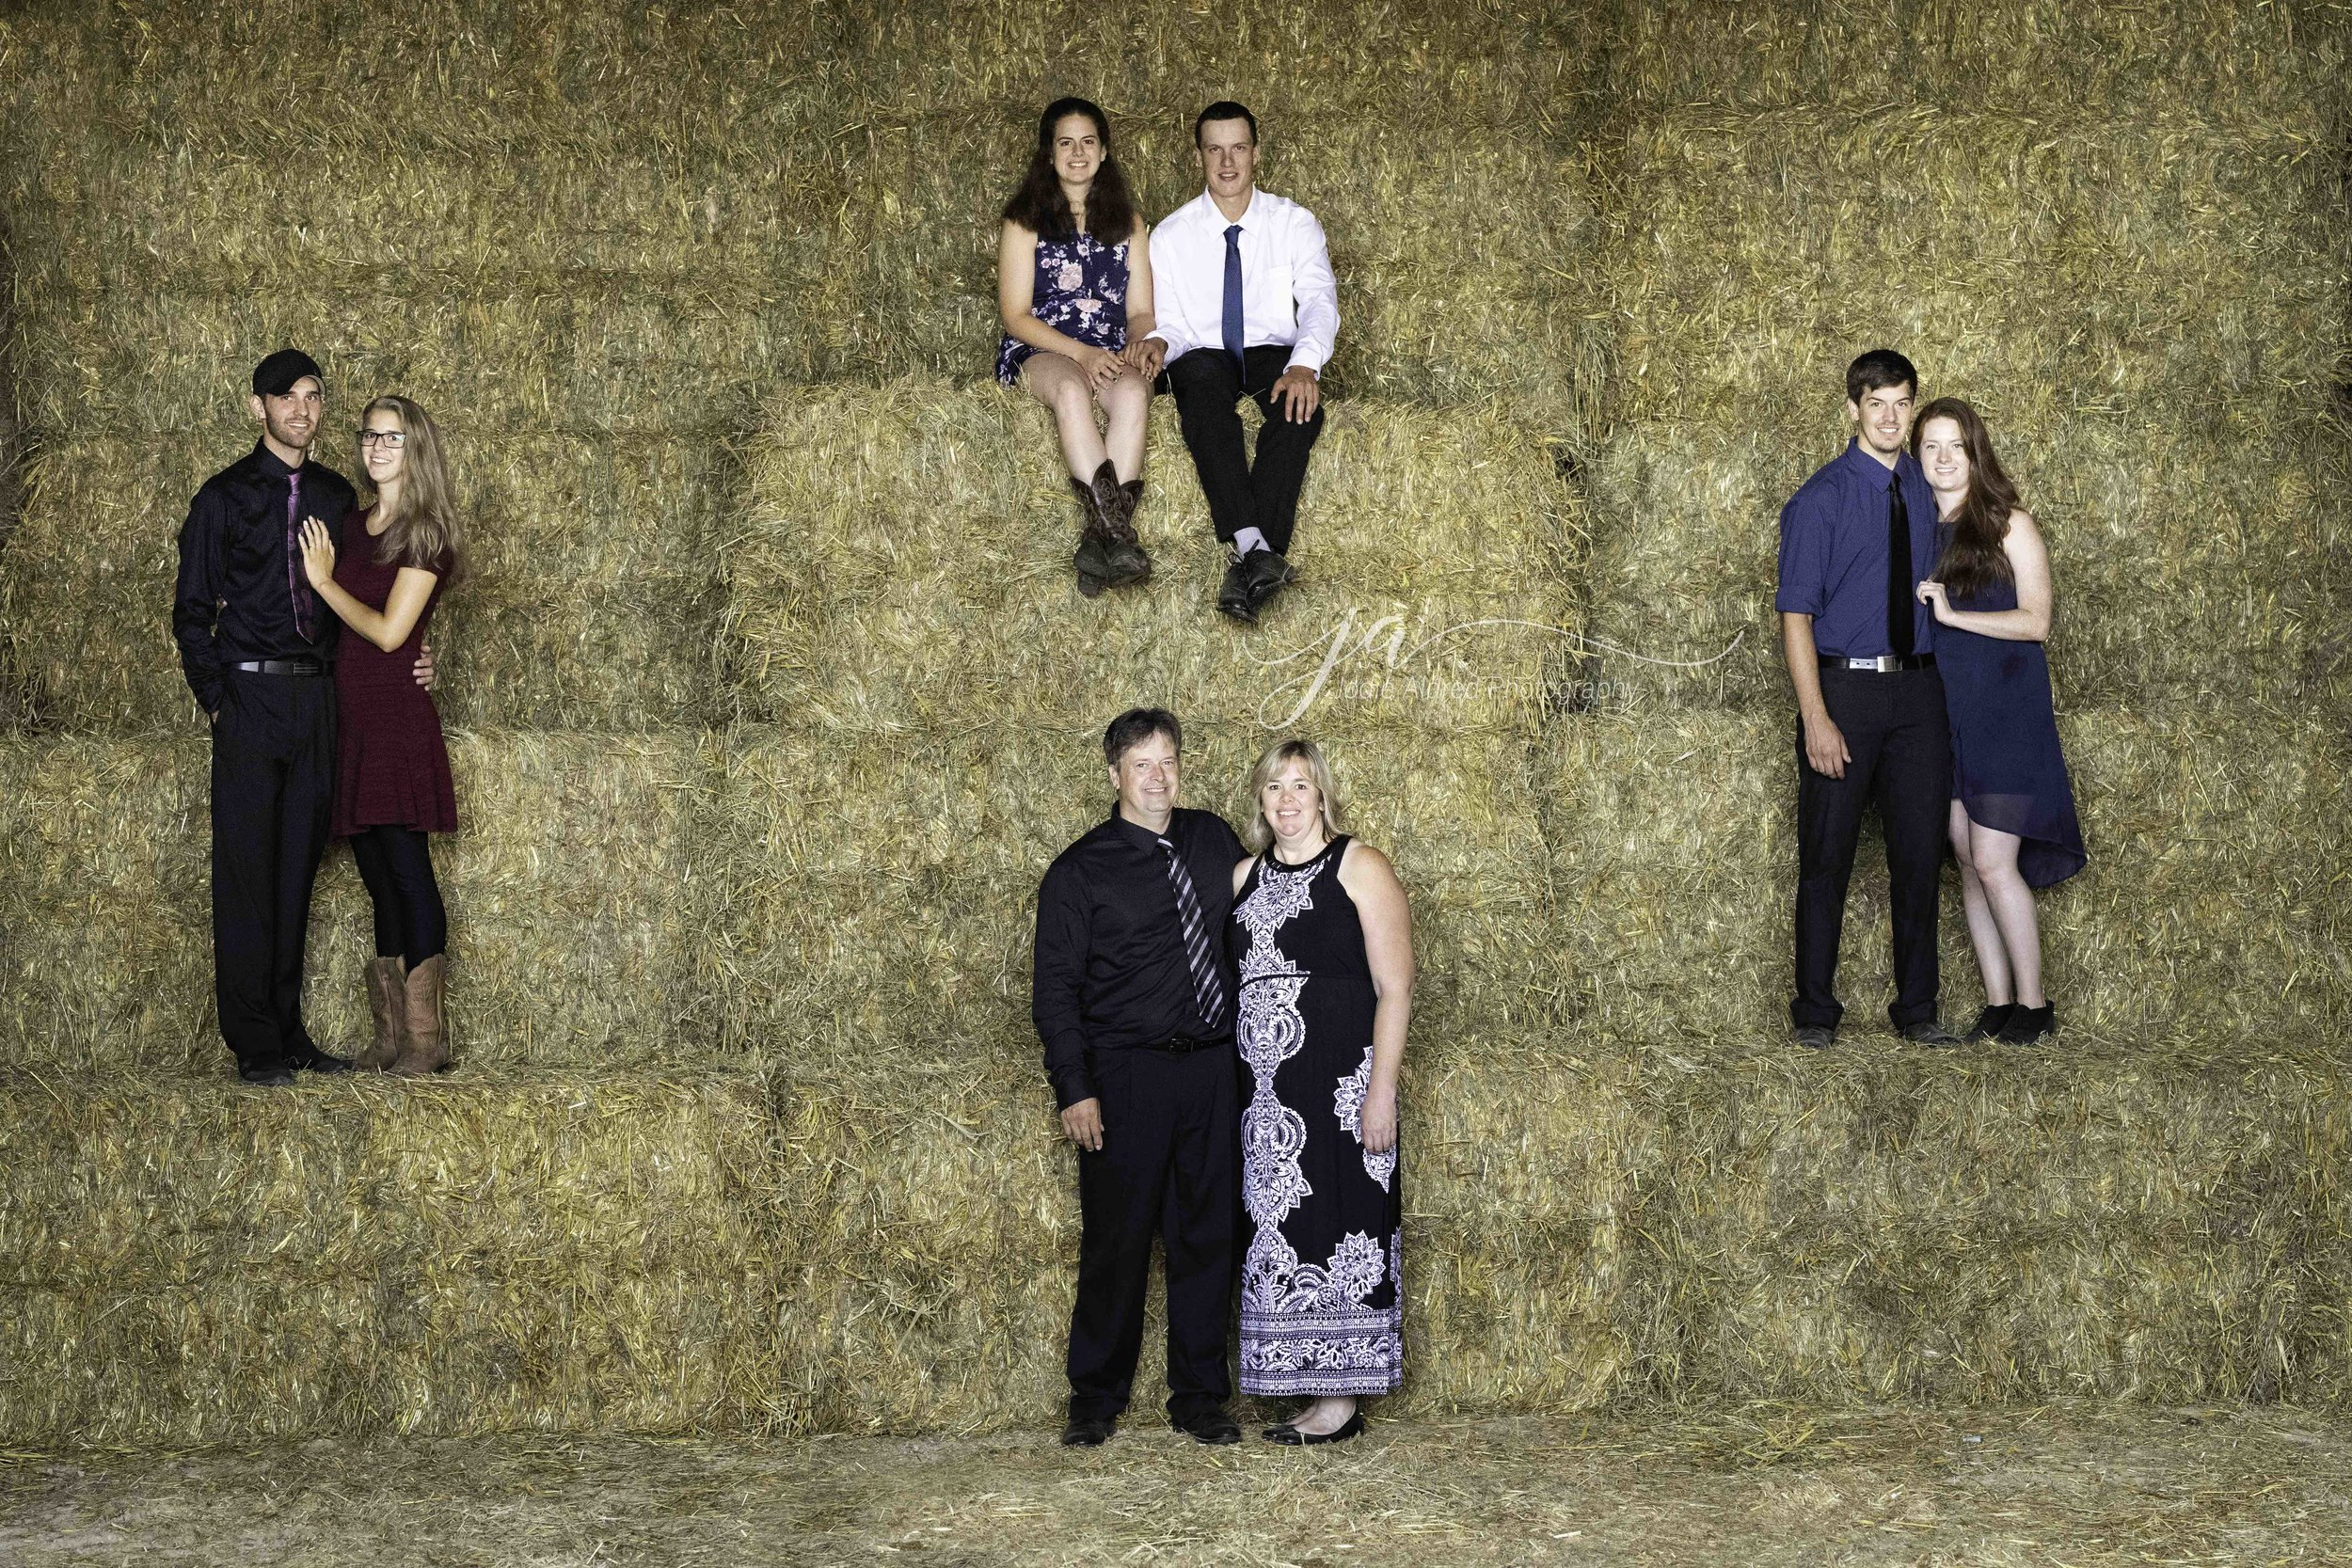 Jodie-Aldred-Photography-Chatham-Kent-Elgin-Middlesex-London-Ontario-Farm-Family-Dairy-Straw.jpg